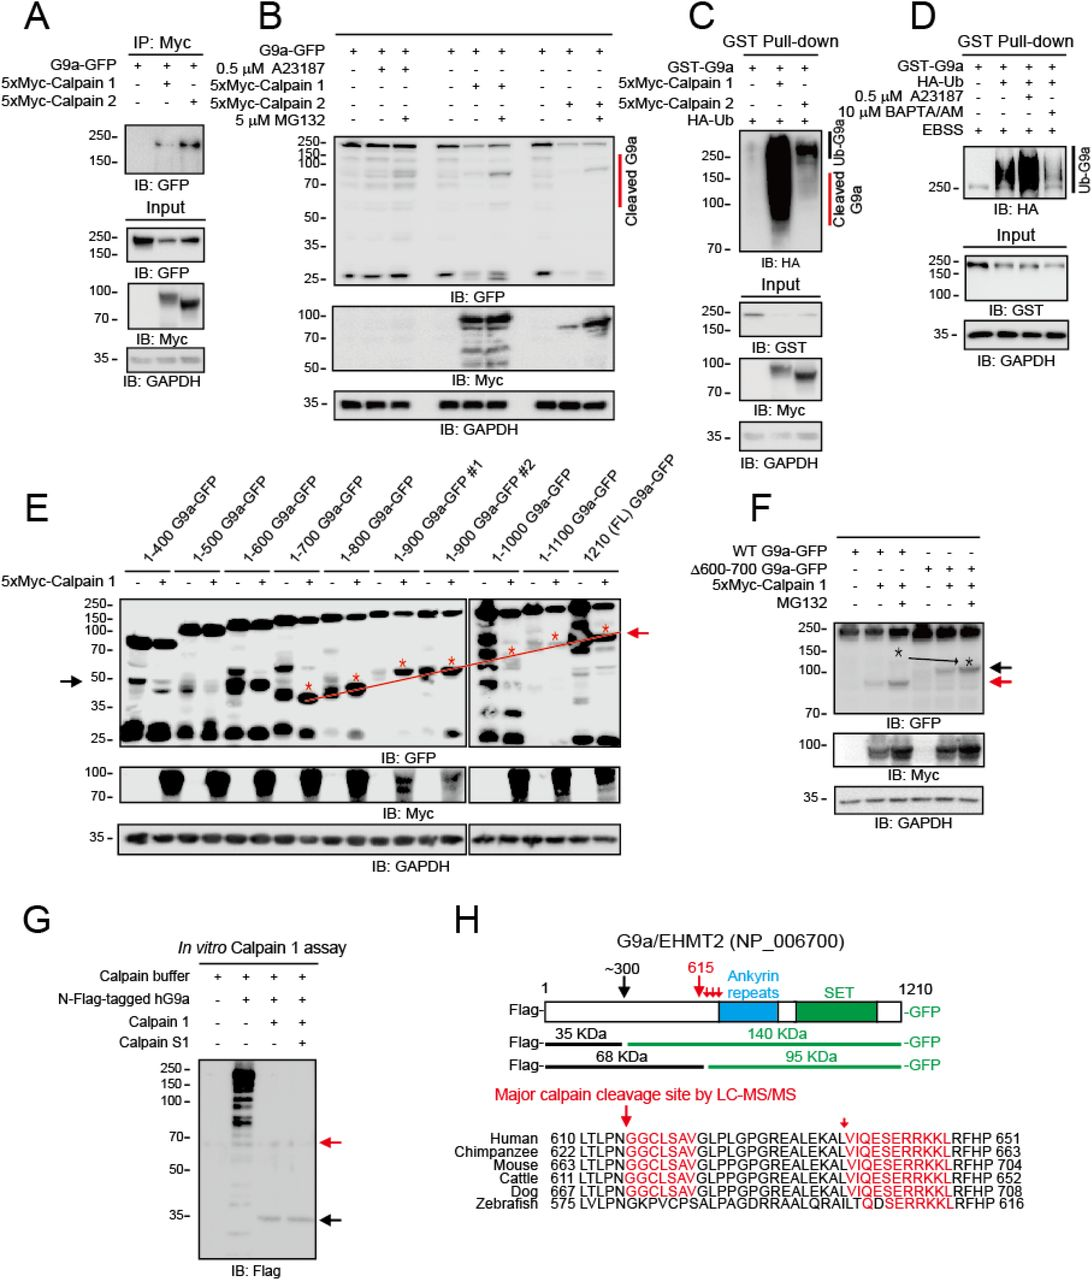 Calpains cleave G9a protein for ubiquitin-mediated degradation. a, Immunoprecipitation (IP) assays show that G9a bound to calpain 1 and 2. 293T cells were co-transfected with 5xMyc-calpain and G9a-GFP plasmids, and samples were prepared as described in the STAR Methods. To prevent G9a cleavage by calpains, the calpain inhibitor calpeptin (10 μM), protease inhibitors, and EGTA (1 mM) were added. b, G9a was cleaved by elevated Ca 2+ influx (A23187) and the expression of calpains in 293T cells. The accumulation of cleaved G9a fragments by MG132 indicates that the cleaved G9a was degraded by the UPS. c, Expression of calpain 1 or calpain 2 promoted G9a ubiquitination in 293T cells. 293T cells were co-transfected with the indicated constructs. d, Elevated Ca 2+ influx by A23187 promoted G9a ubiquitination, whereas Ca 2+ chelation by BAPTA/AM reduced G9a ubiquitination under starvation in EBSS medium. GST pull-down assays were performed to monitor the ubiquitination level of G9a-GST after 12 hours of EBSS starvation. e, Calpain cleavage sites in G9a are located between aa 600 and aa 700. f, The Δ600–700 G9a-GFP mutant lacking the calpain cleavage sites was more resistant than WT G9a-GFP to calpain 1, as indicated by the lack of cleavage products (red arrow) and a higher level of intact G9a protein. The cleavage products of the Δ600–700 G9a (black arrow) suggest the presence of an additional calpain cleavage site at the N-terminus of G9a. g, An in vitro calpain cleavage assay confirmed that G9a has two cleavage sites. The main site is between aa 600 and aa 700. An additional N-terminal cleavage site is near aa 300. Recombinant Flag-tagged hG9a, calpain 1, and calpain S1 (a calpain 1 co-activator) were incubated for 10 min at 37°C, and the reaction products were subjected to Western blot analysis. h, A schematic diagram of the G9a cleavage sites and fragments in Fig. 2f , g and Supplementary Fig. 5 . The calpain cleavage sequences in G9a are highly conserved across vertebra